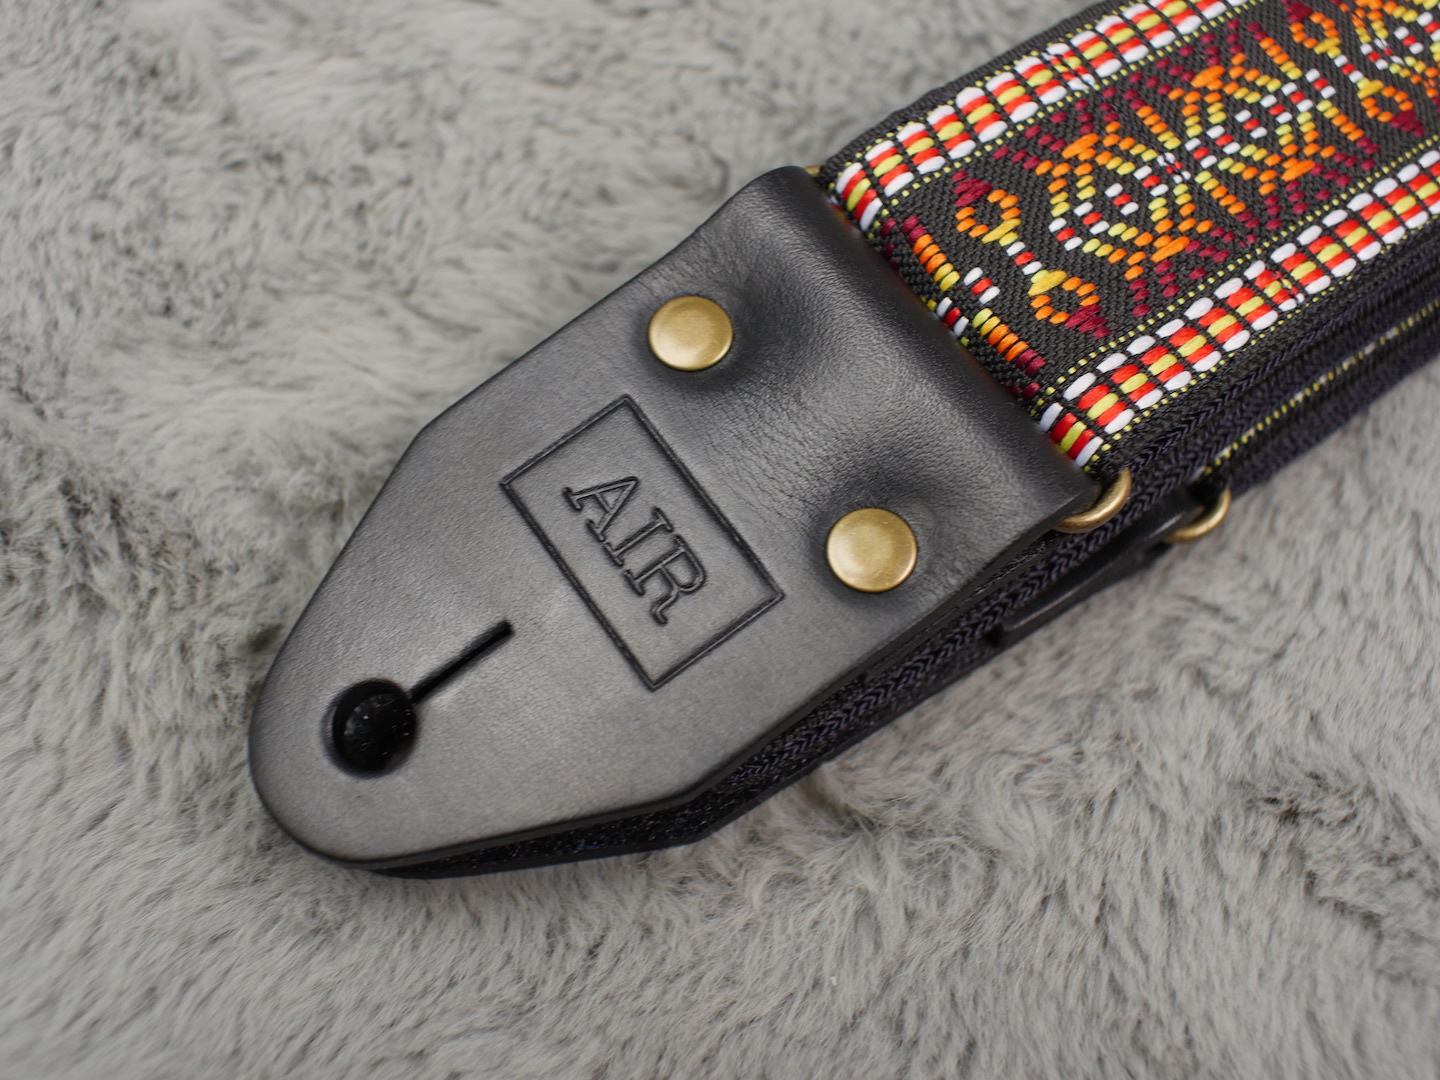 Air Straps Limited Edition 'Apache' Guitar Strap